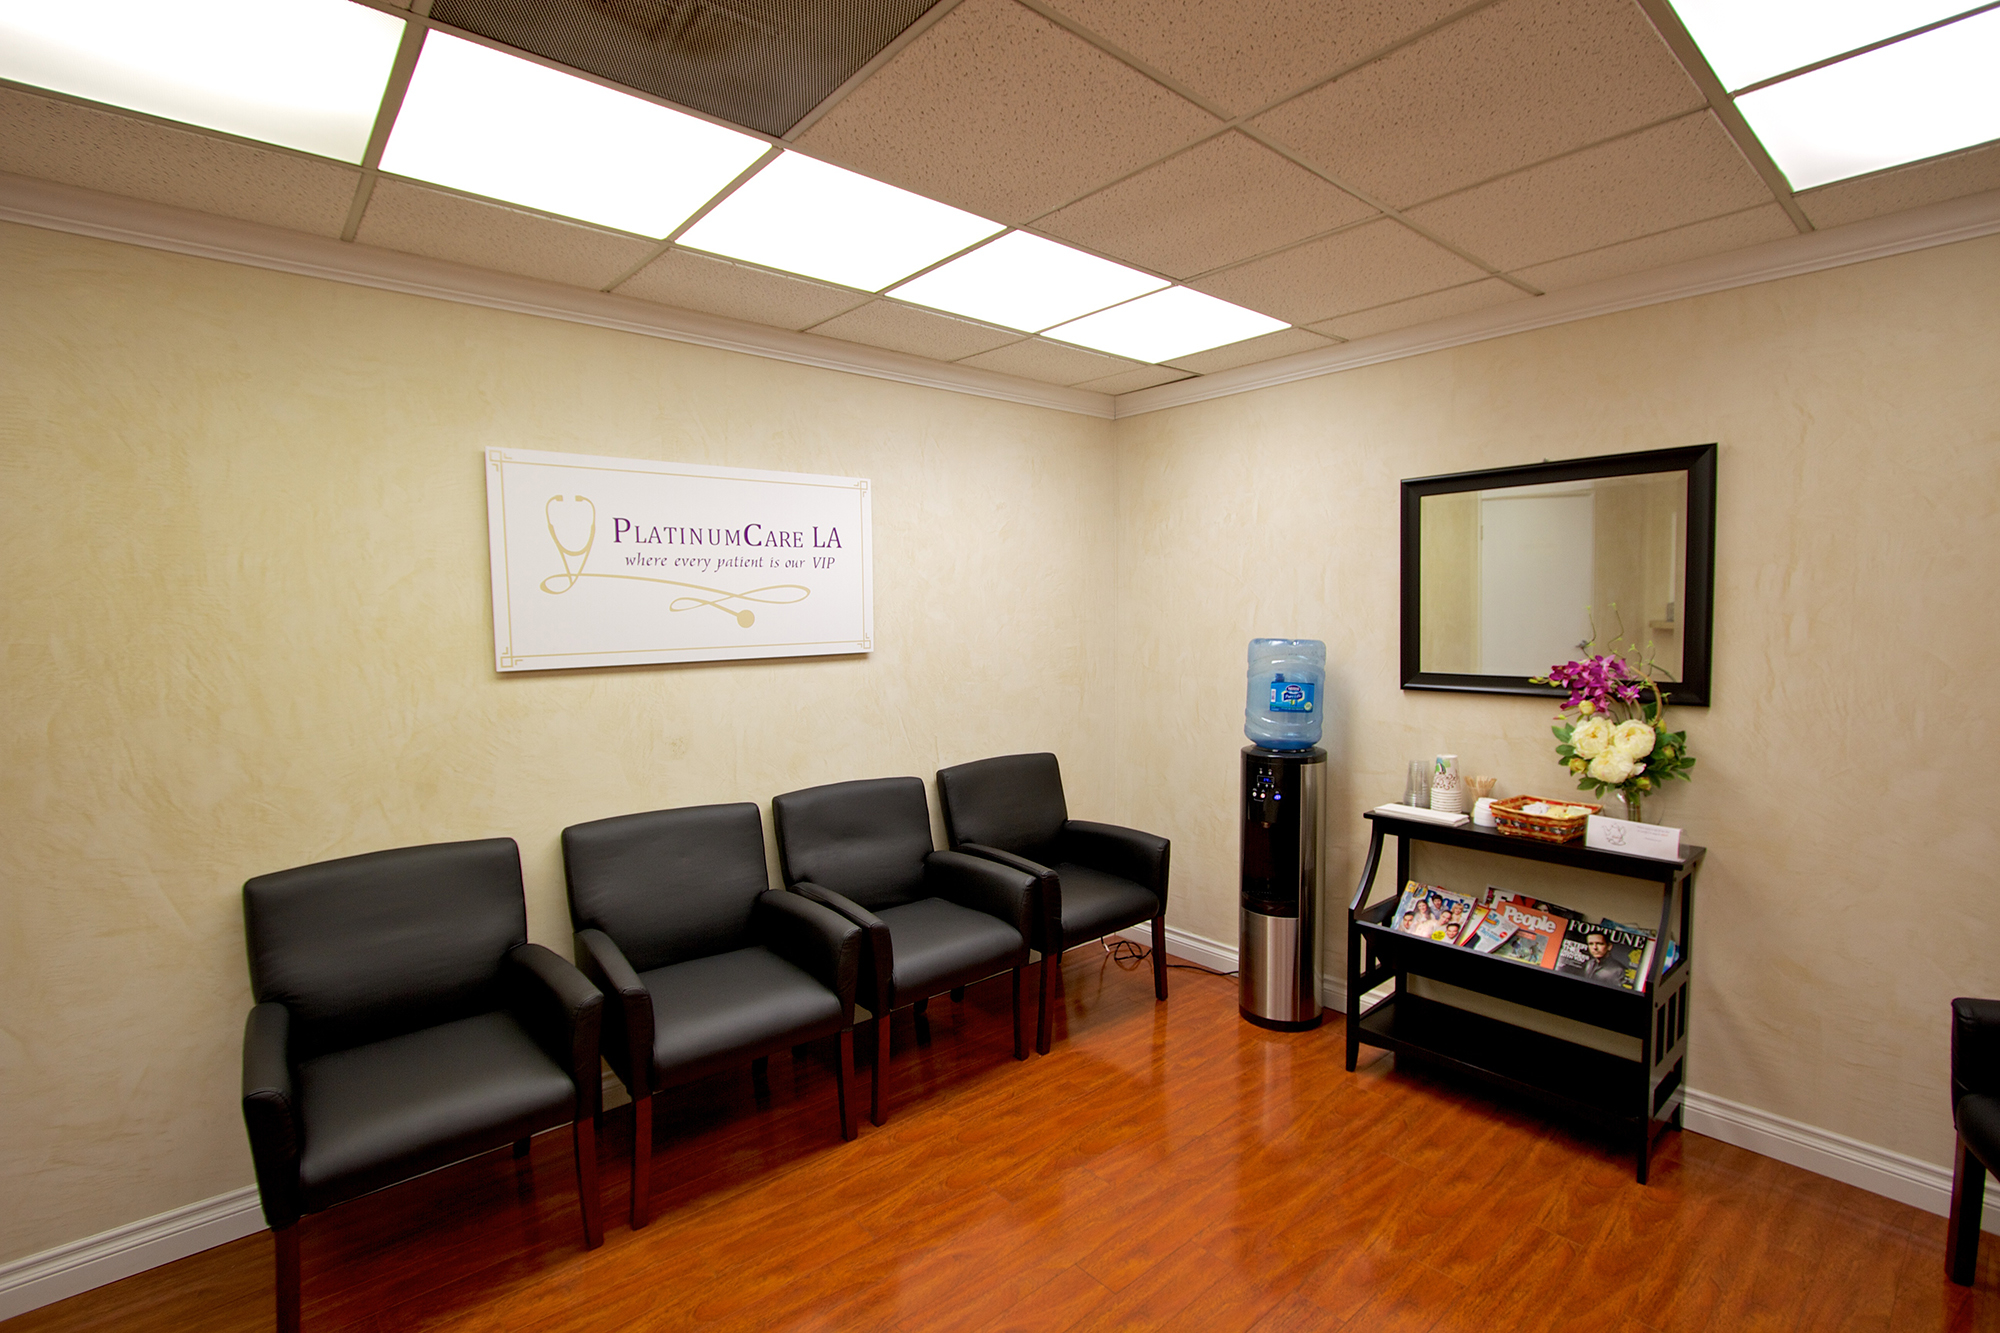 Platinumcare la dr vinay aggarwal md in los angeles ca for 6801 park terrace los angeles ca